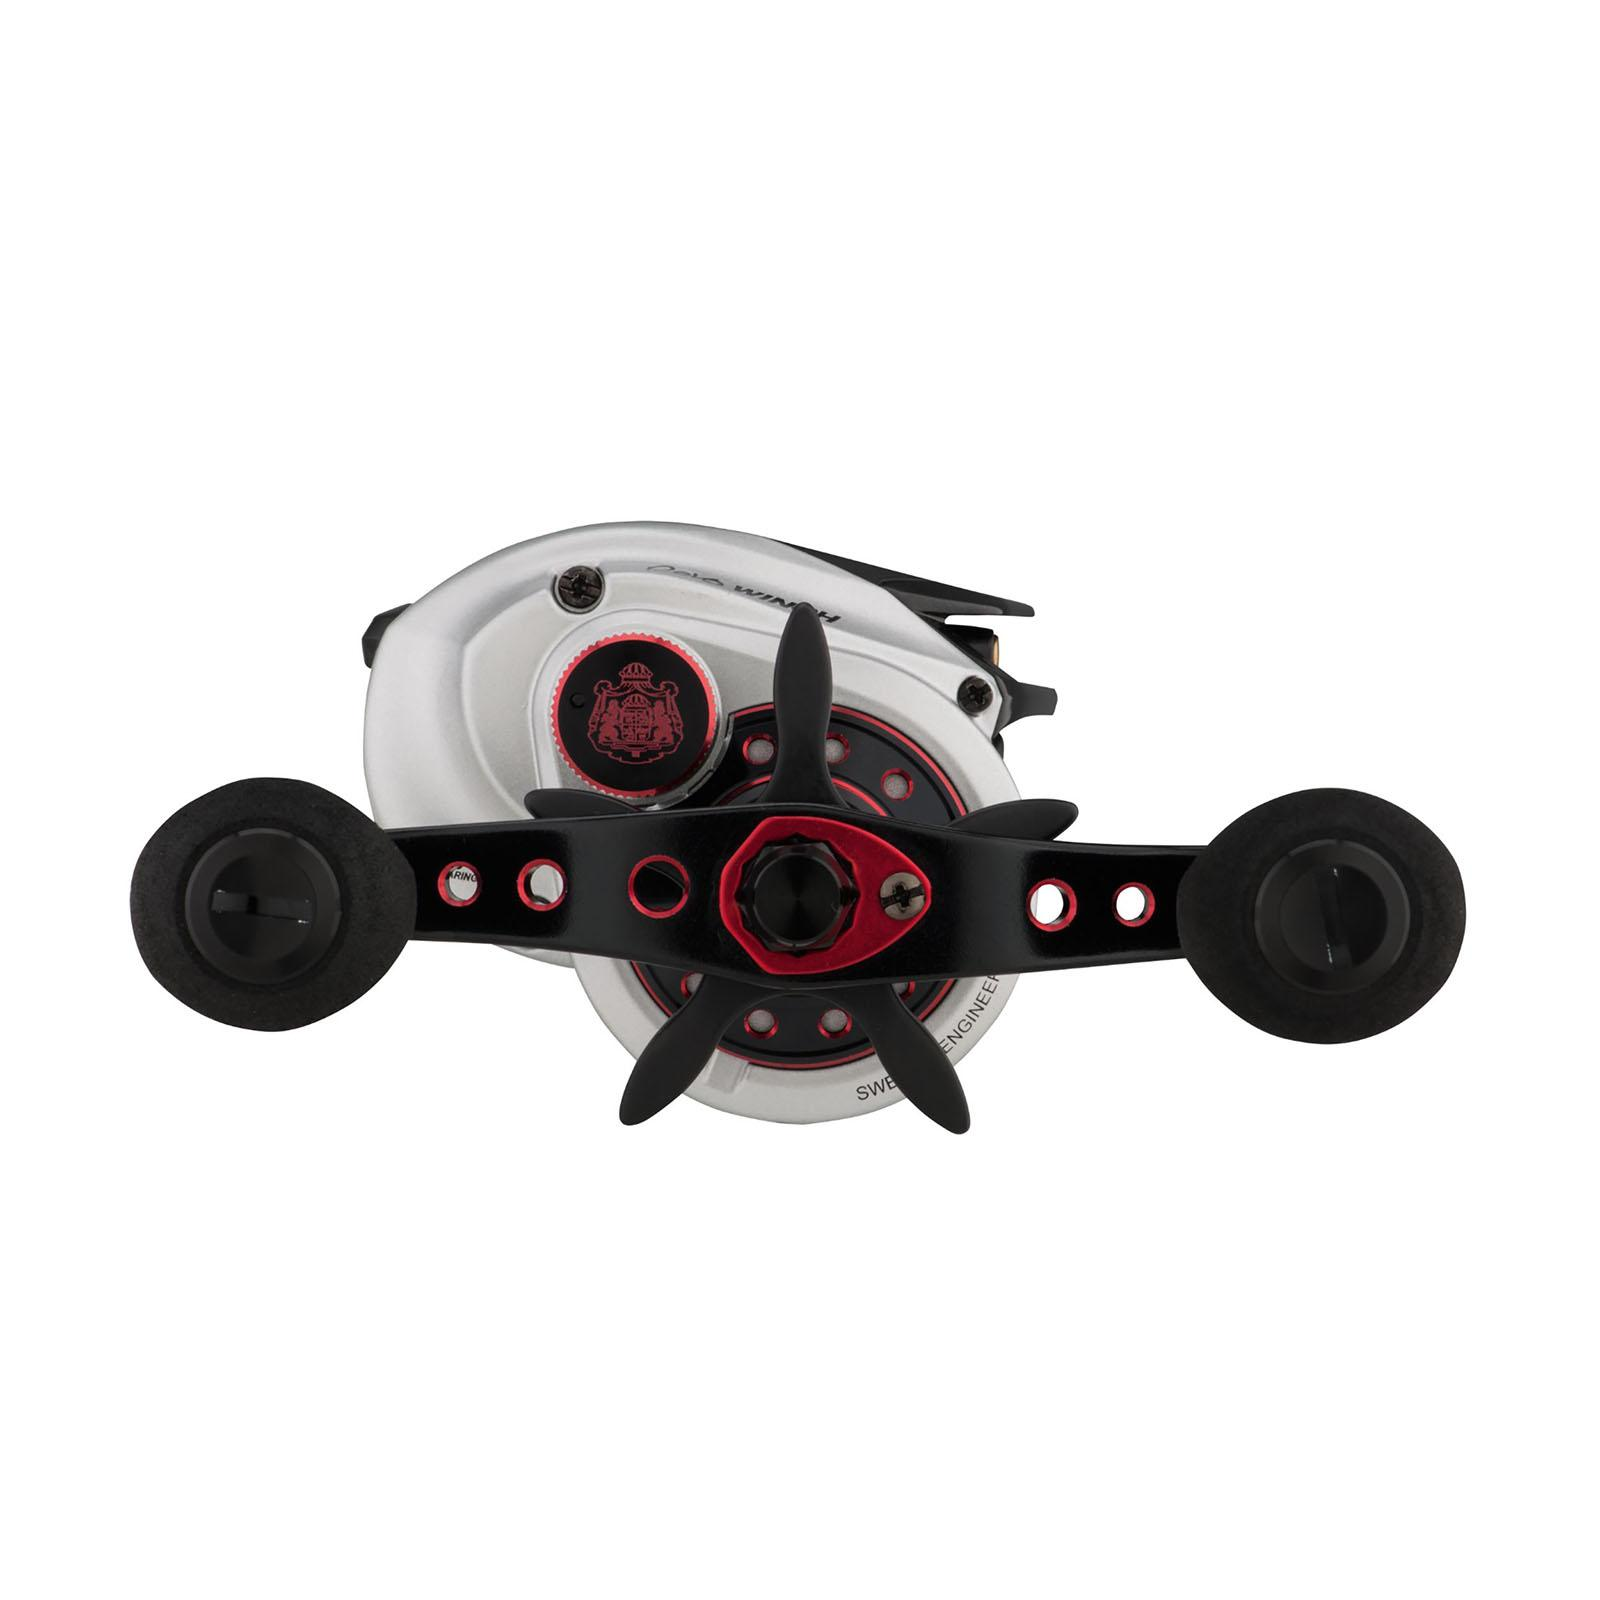 Abu Garcia Revo Winch, Handle View